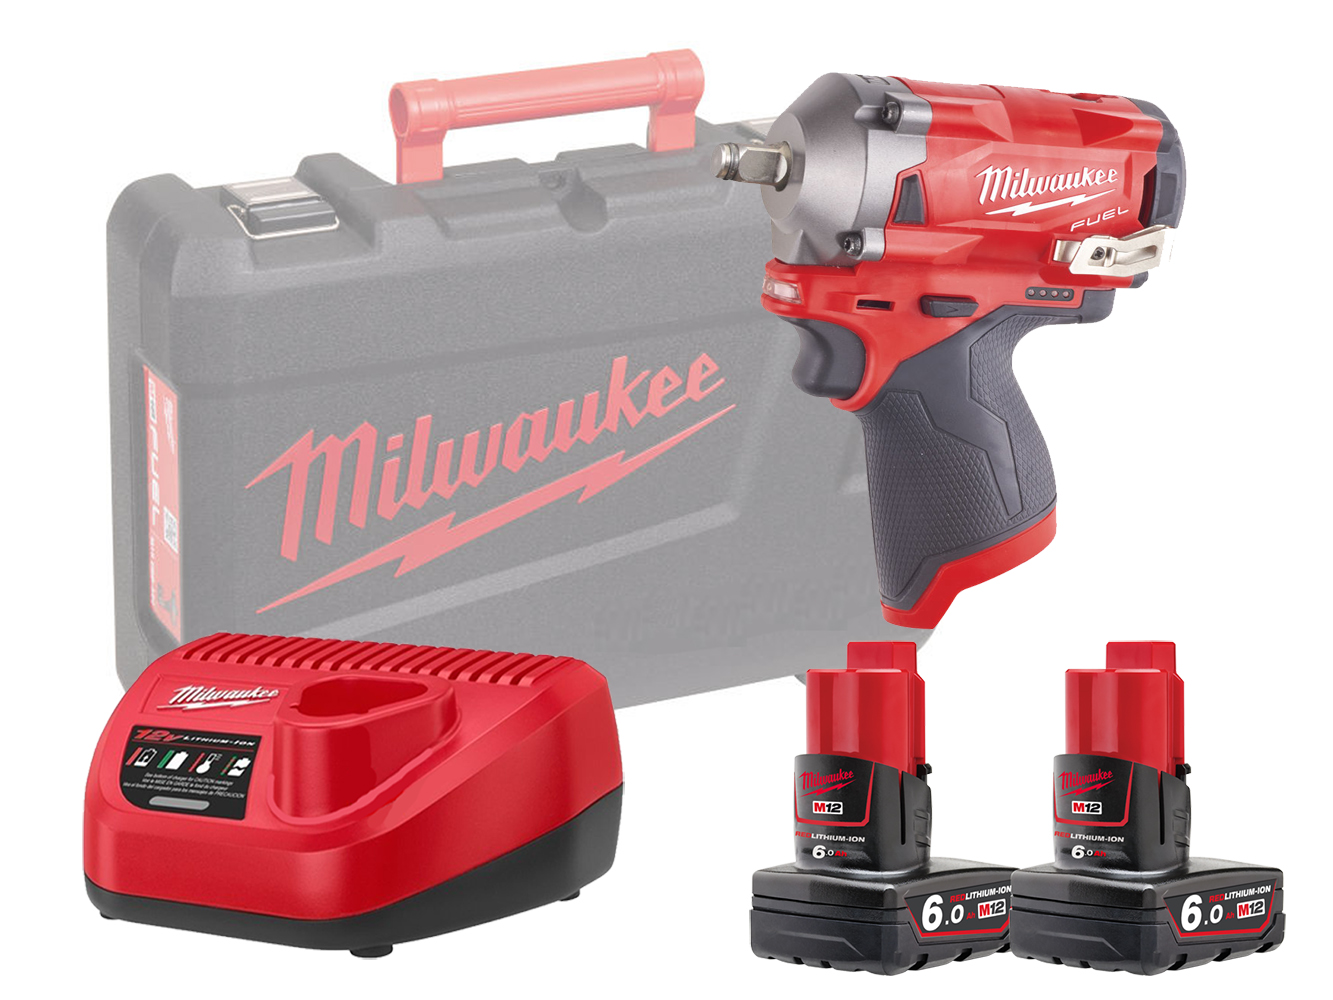 MILWAUKEE 12V FUEL COMPACT IMPACT WRENCH 1/2